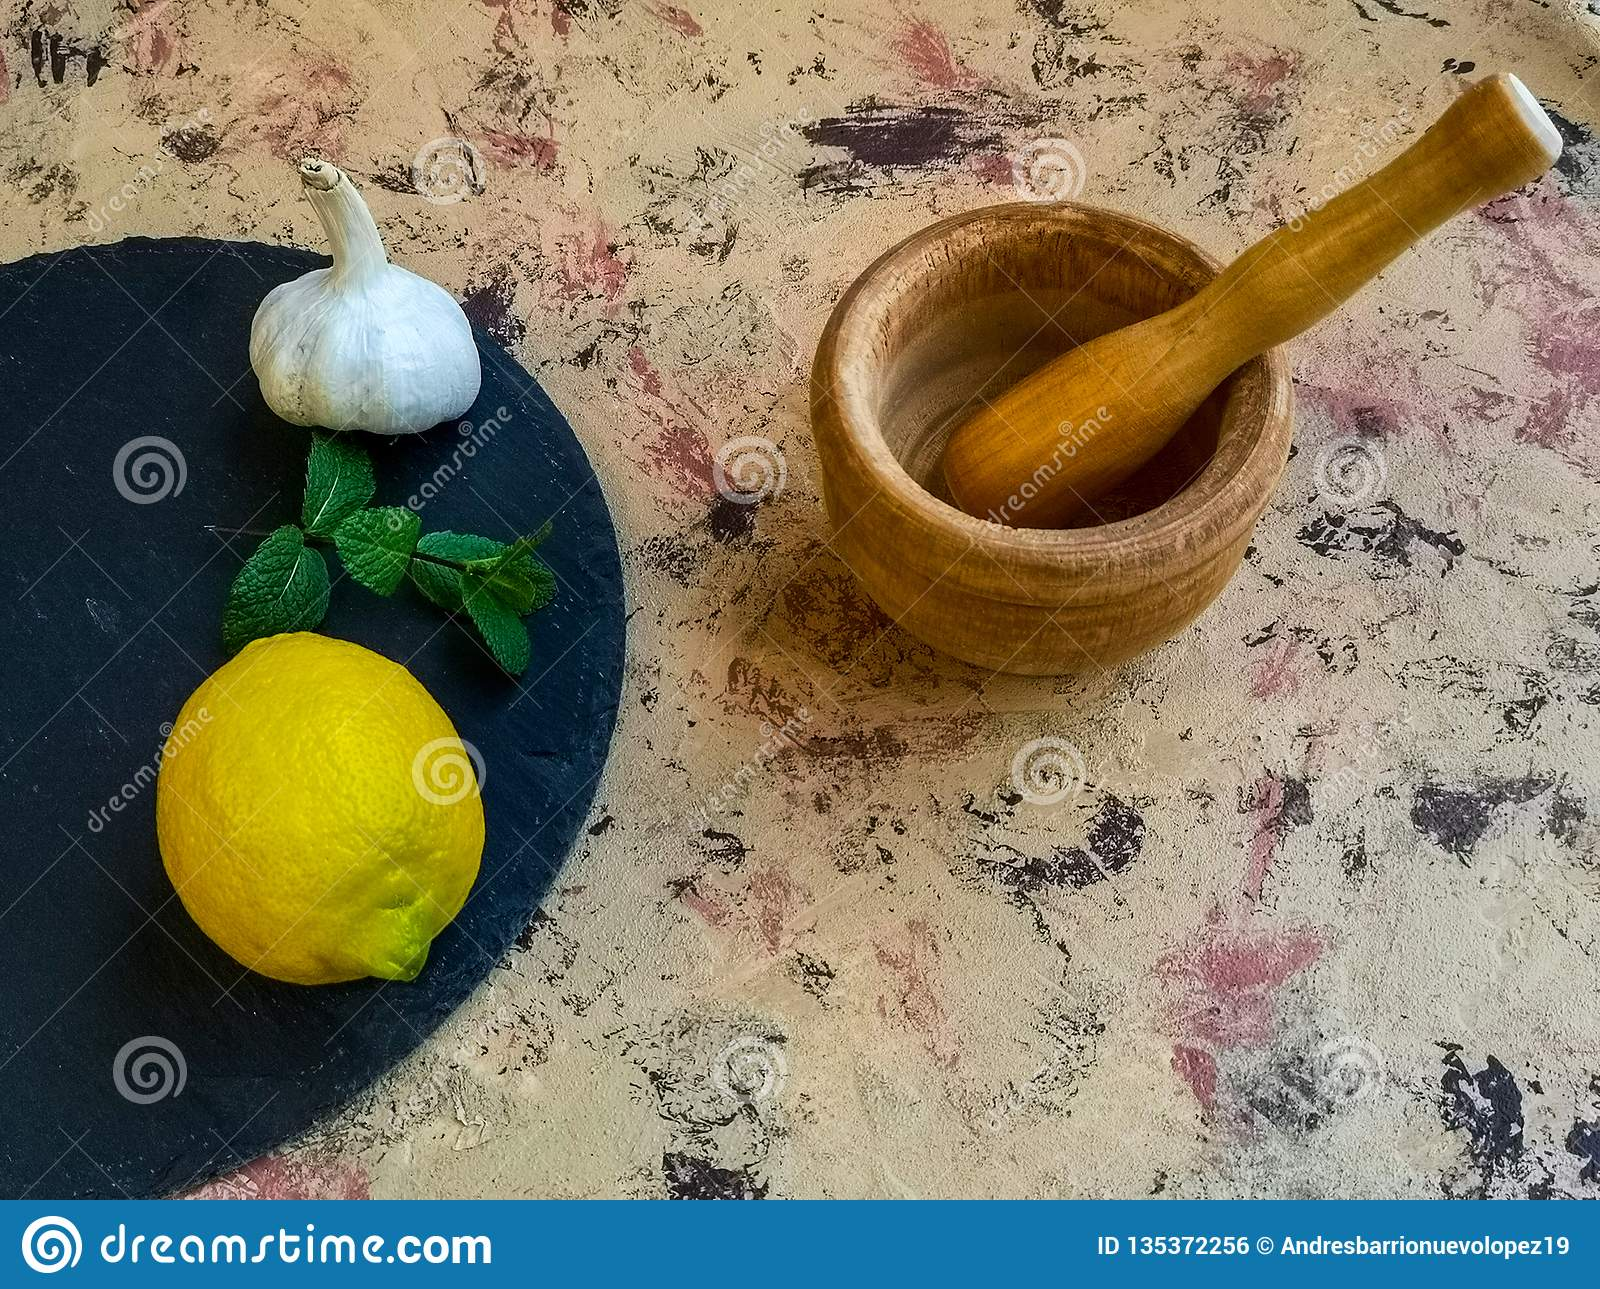 Composition Of Ingredients For Making Mayonnaise With Garlic On Background Pastel Shades